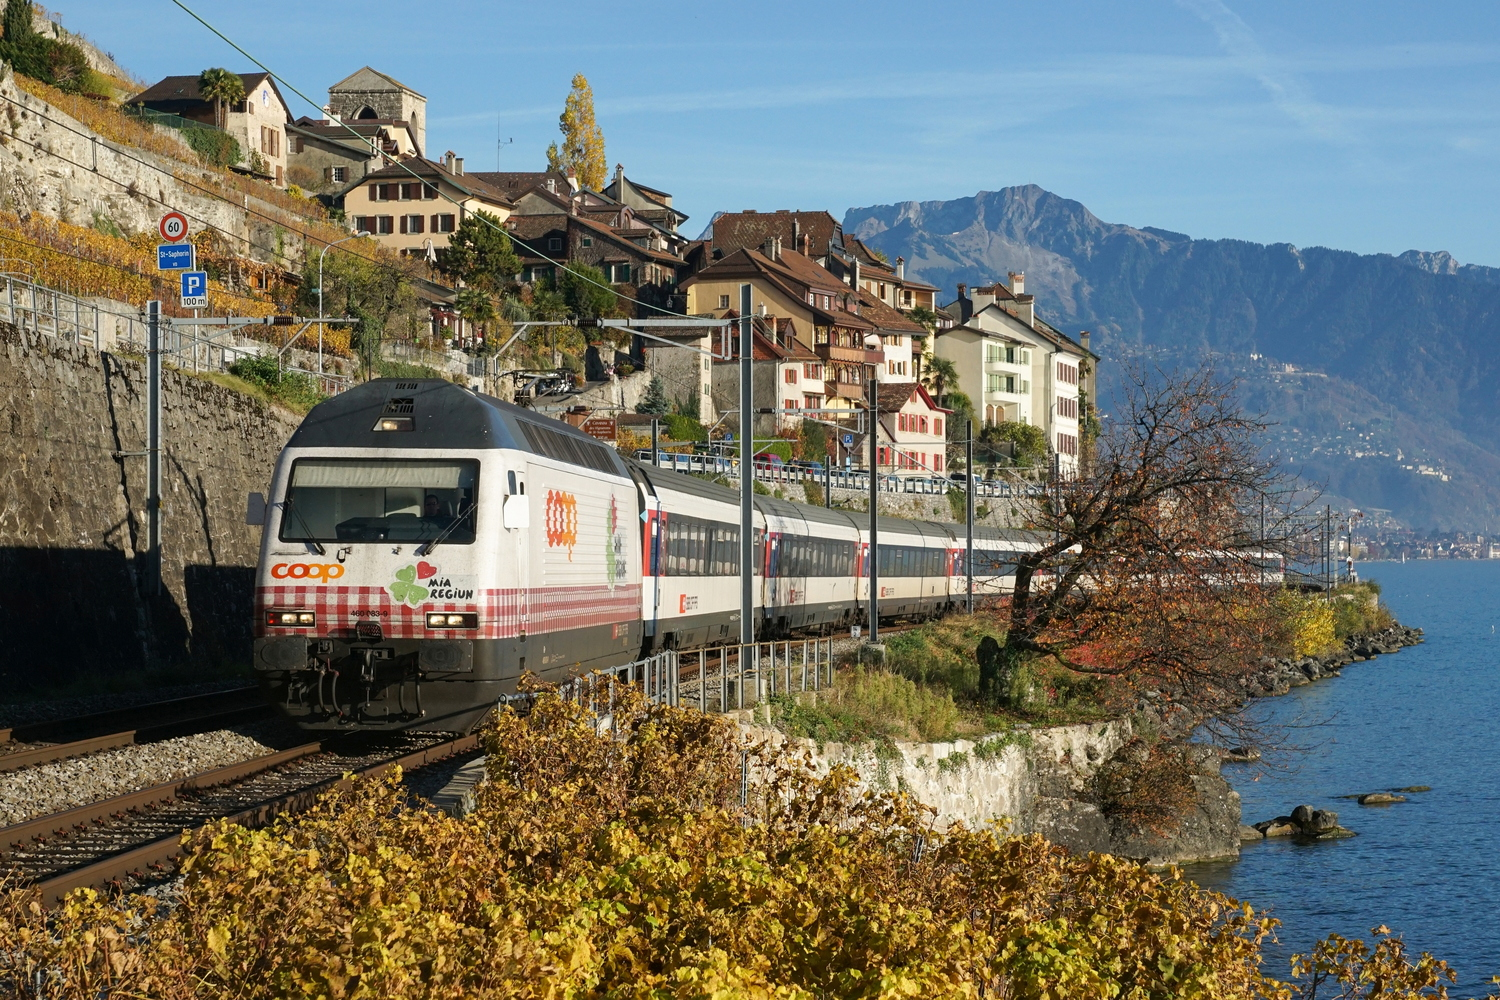 SBB Re 460 083-9 Coop Mini Region 04.jpg